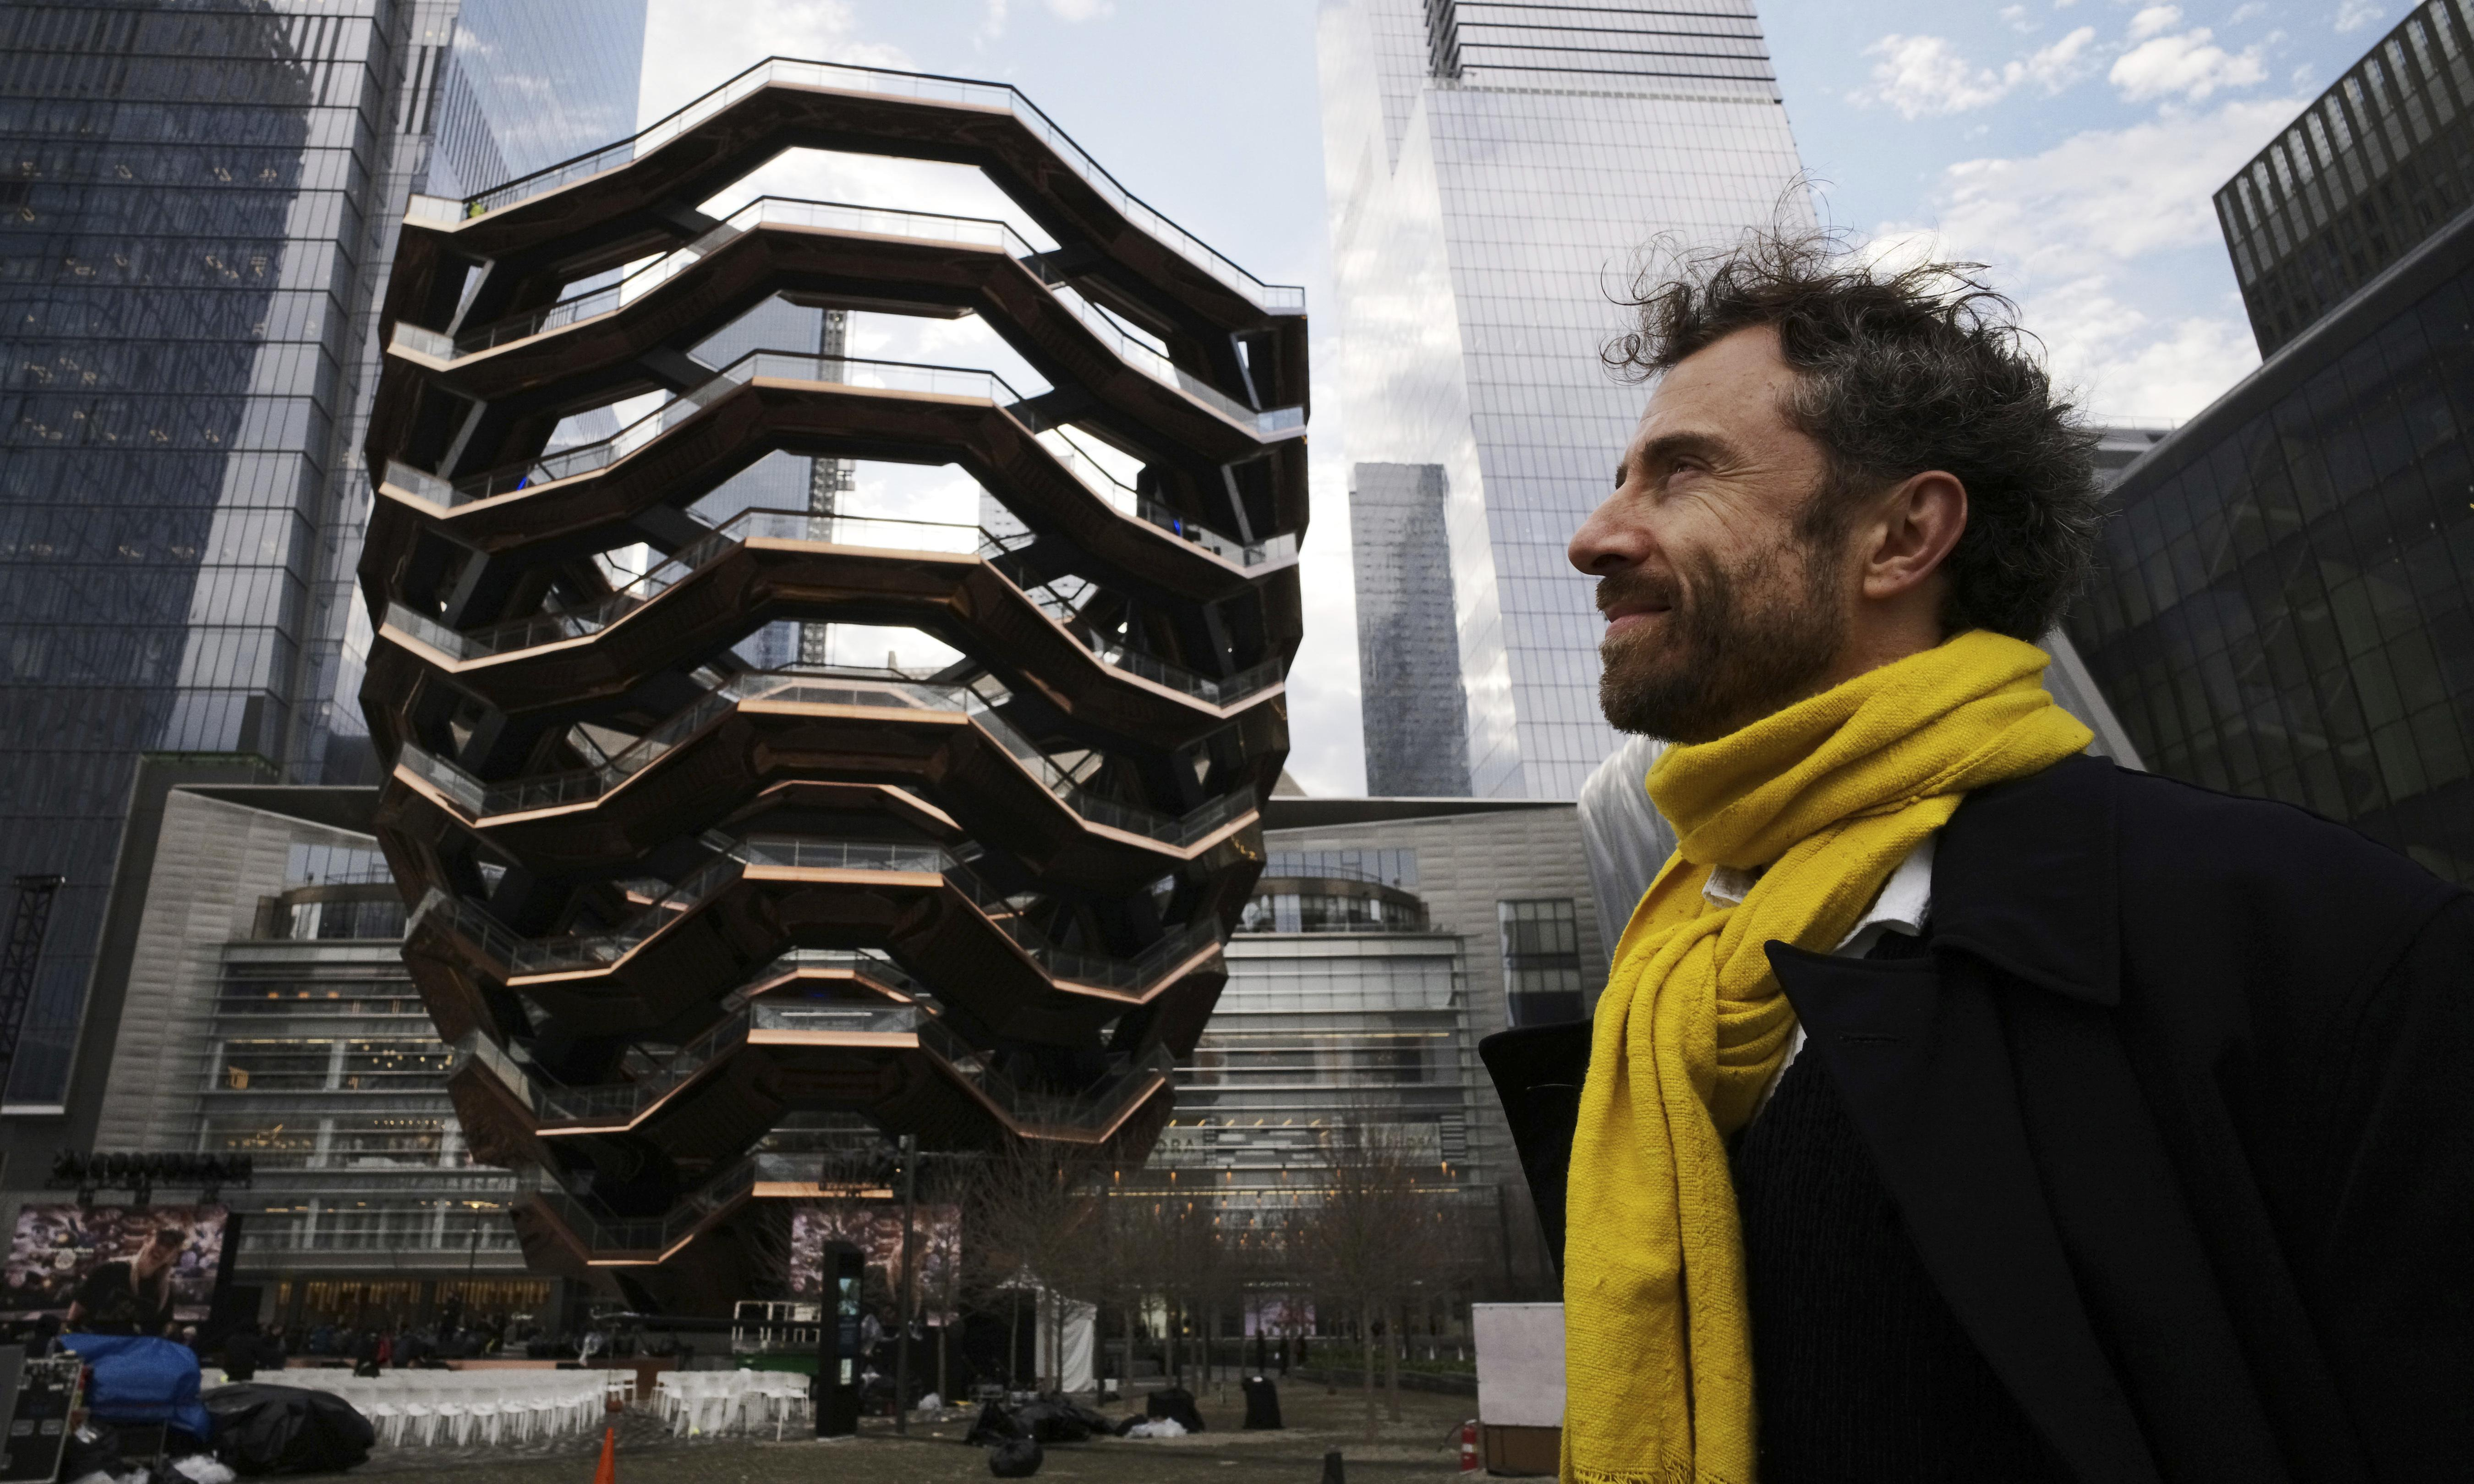 'We never thought it would happen': Thomas Heatherwick's $200m gamble